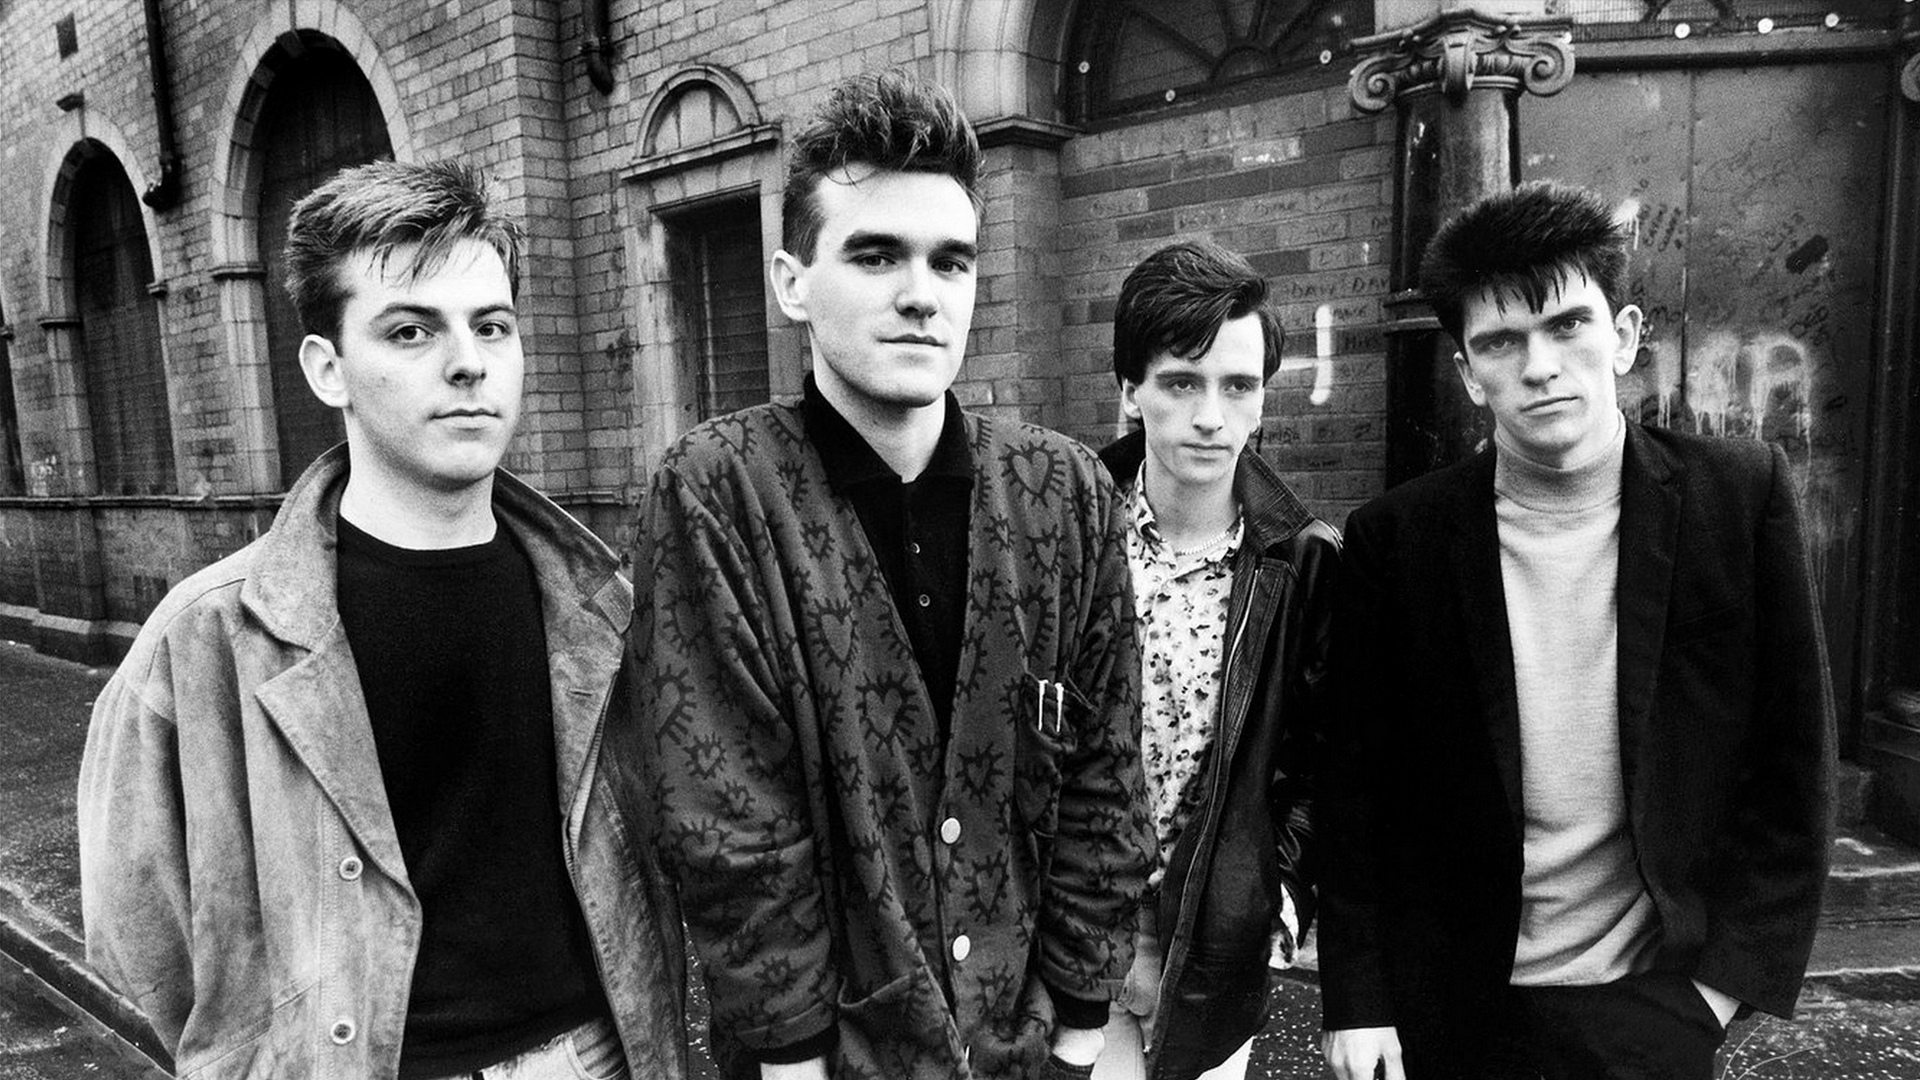 The Queen is Dead: Escucha la remasterización del clásico disco de The Smiths